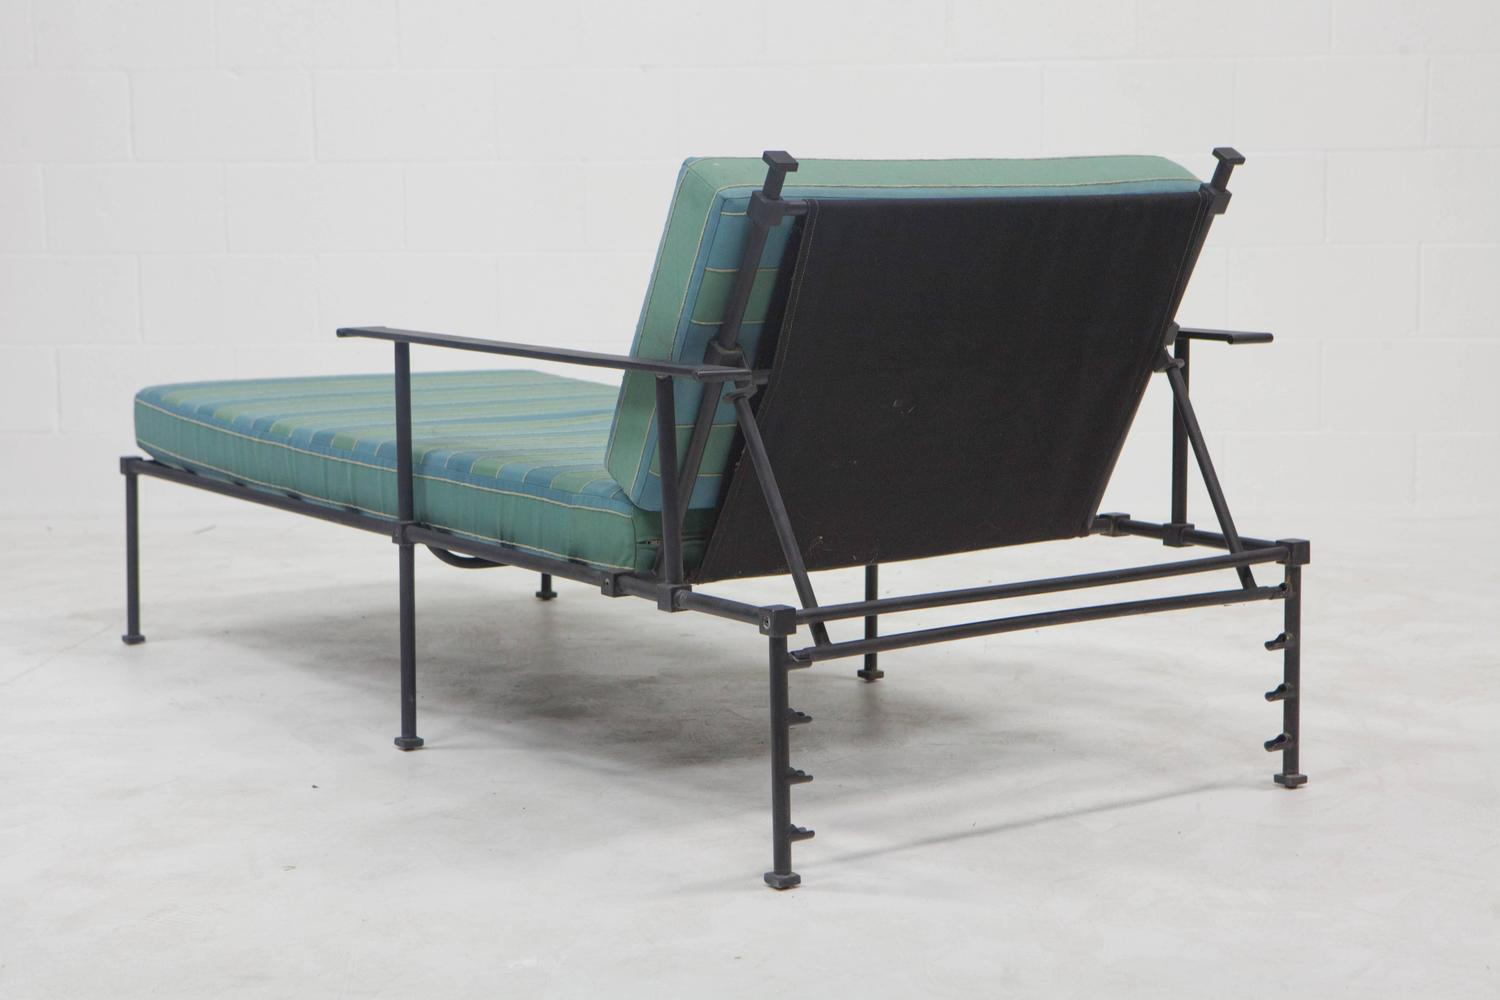 Outdoor vintage chaise lounges at 1stdibs for Antique chaise lounge prices